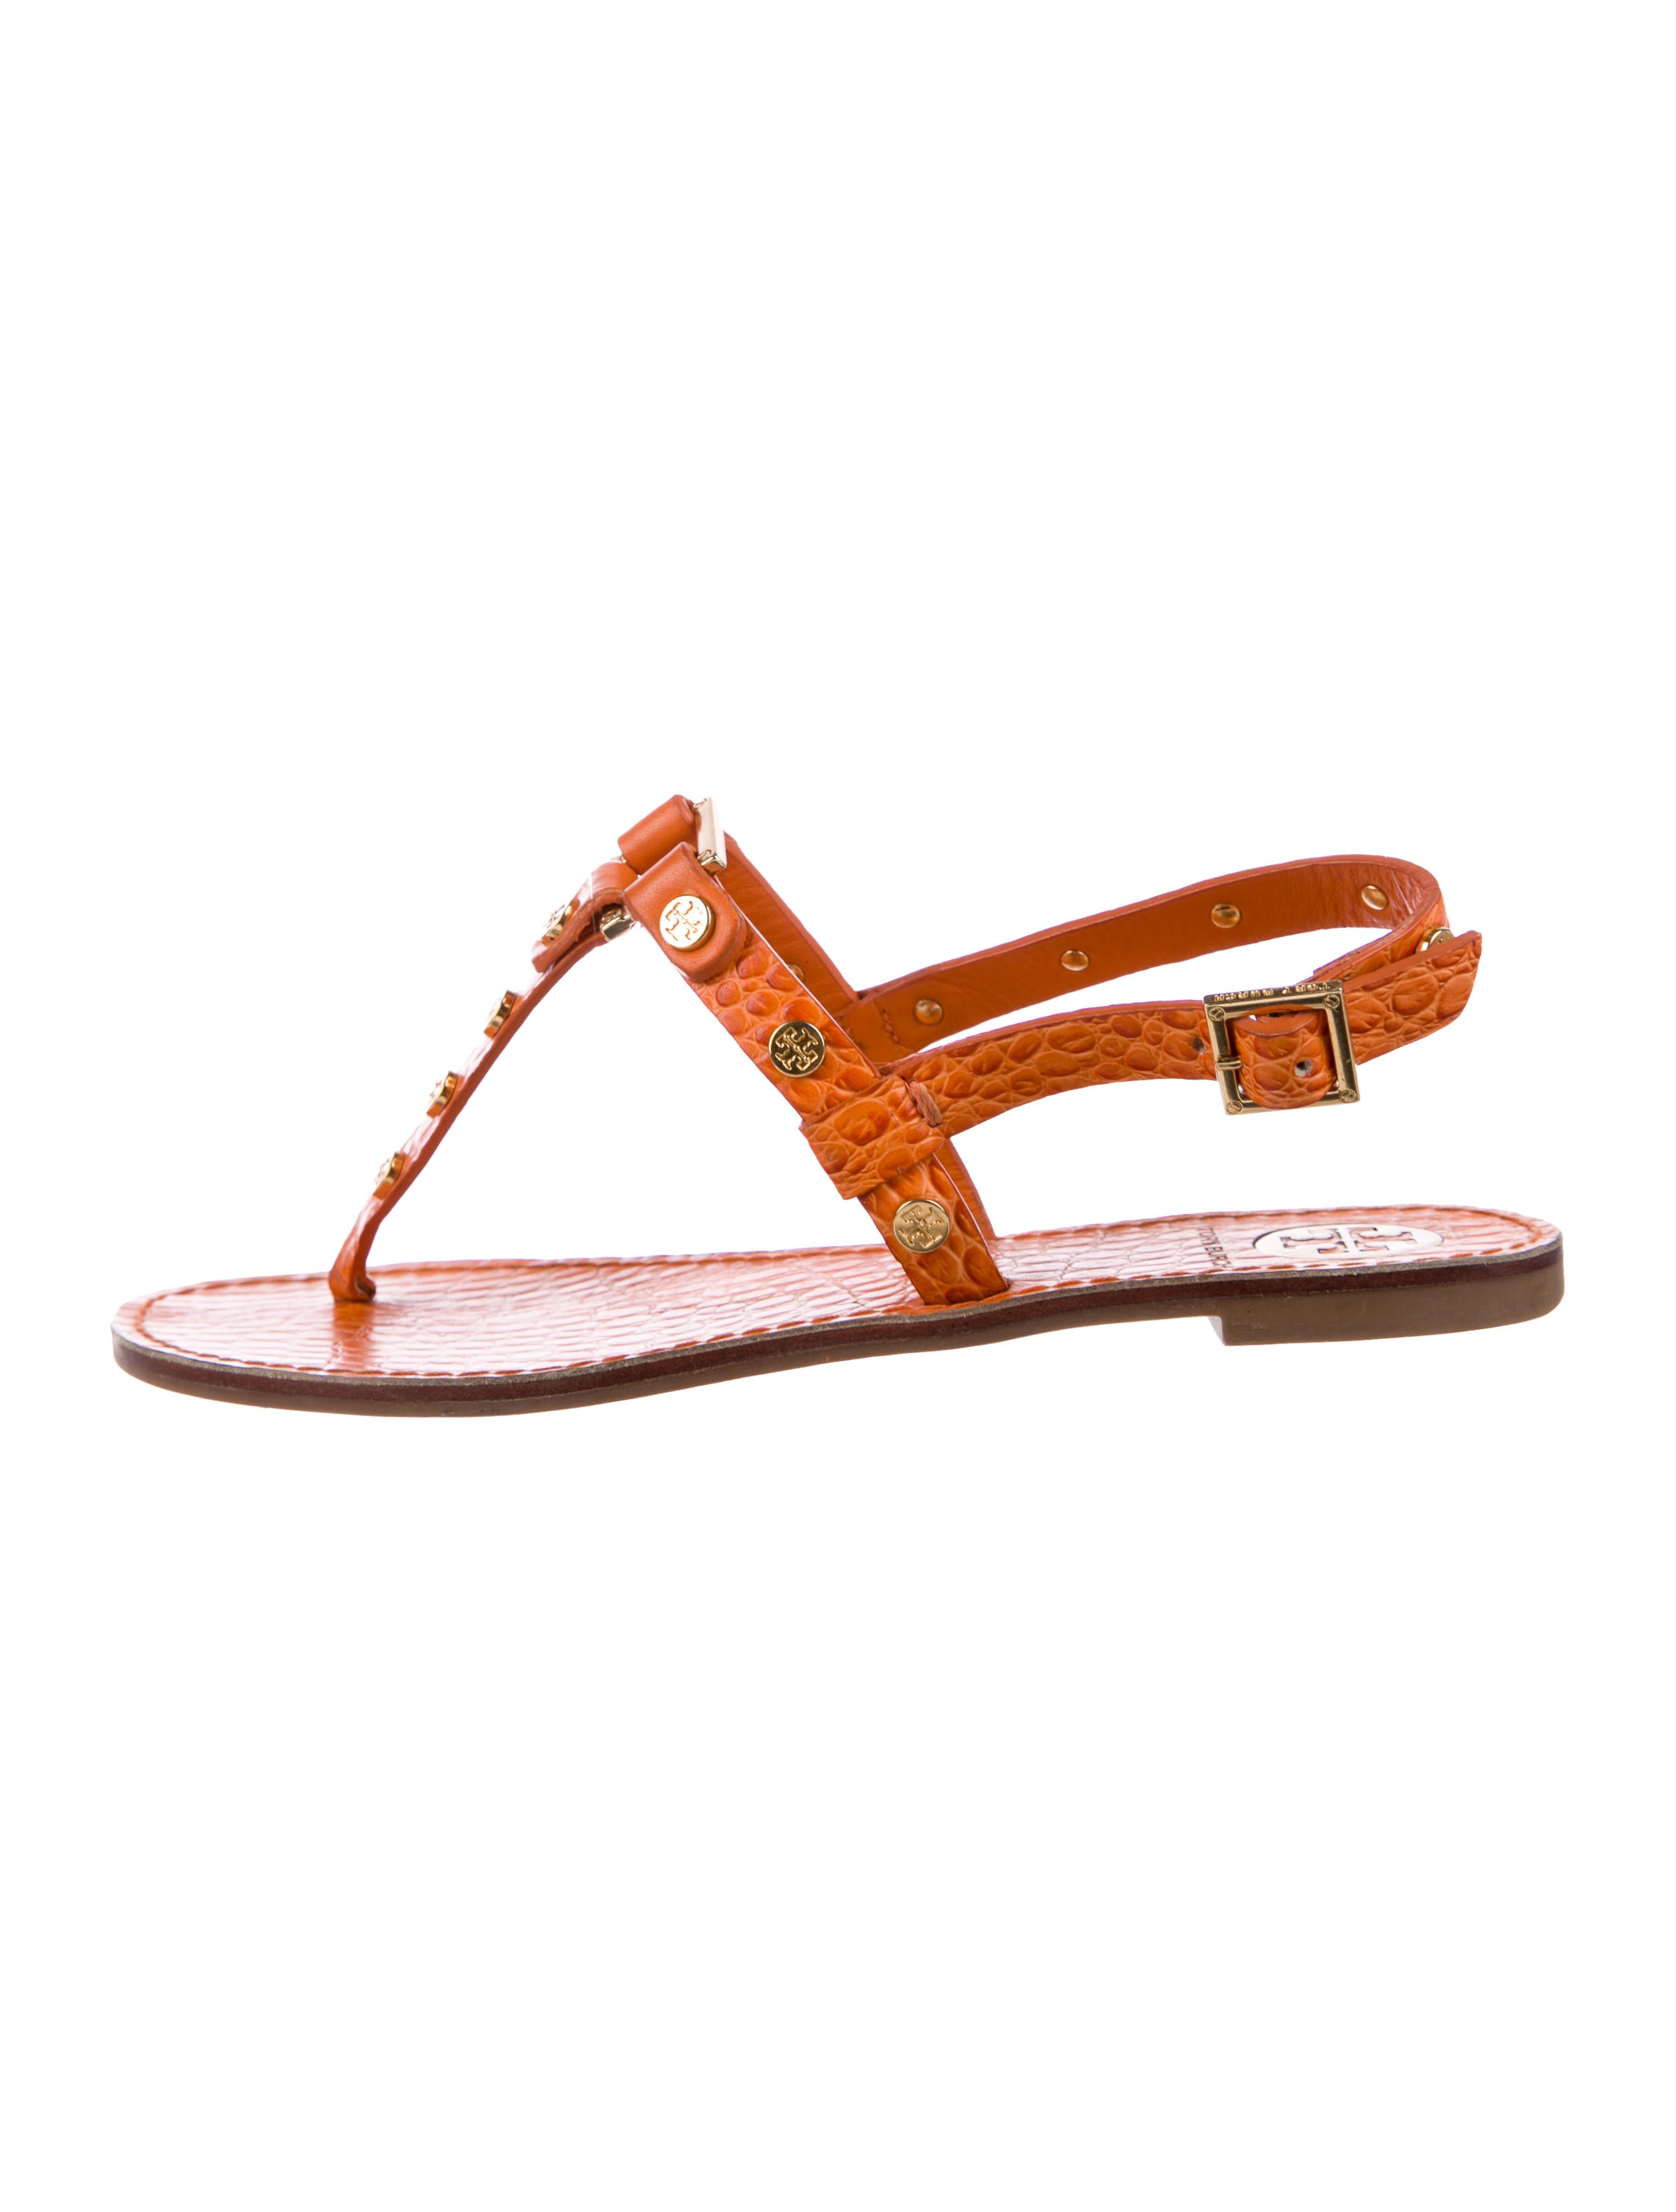 27786c67ee1861 Tory Burch Studded Marge Sandals - Shoes - WTO133750